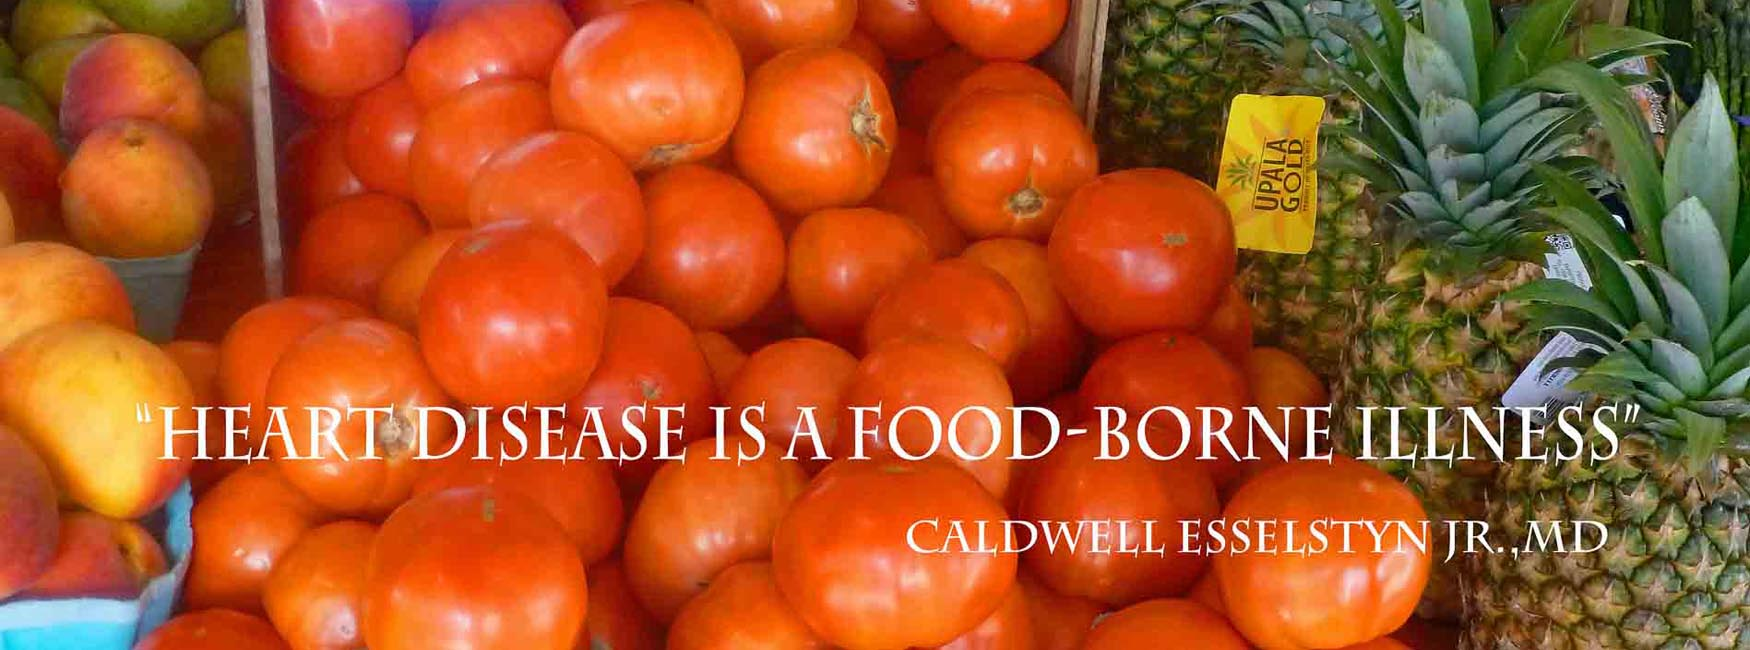 Plant based foods are the healthiest you can eat.